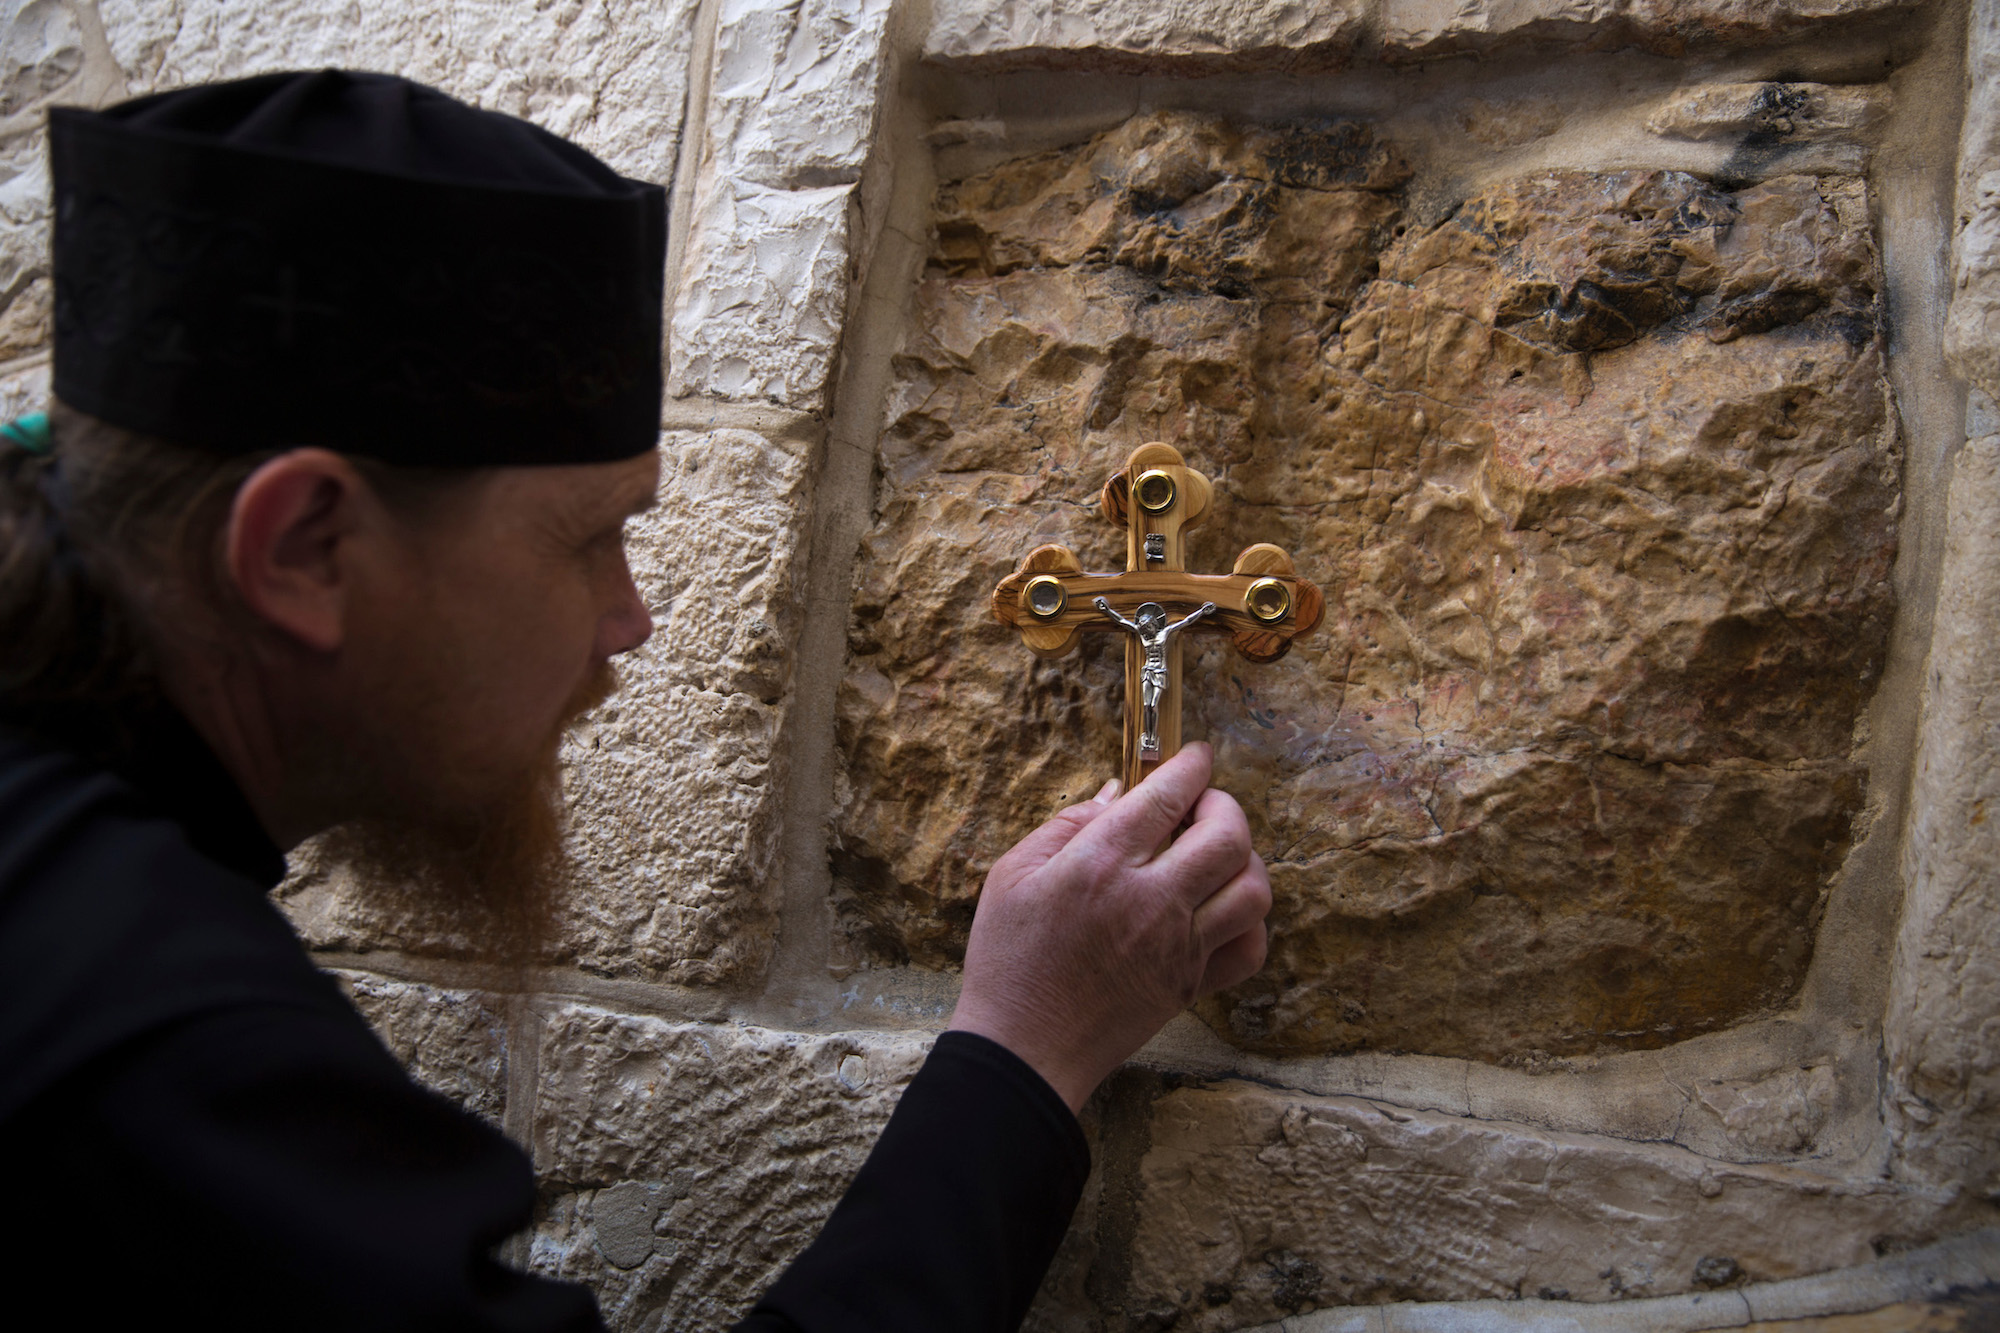 "An Orthodox Christian worshipper stops at one of the fourteen stations of the cross along the Via Dolorosa, or ""Way of Sorrow"", in the Old City of Jerusalem. On Good Friday, Christians around carry out a procession along the Via Dolorosa, which is believed to be the path that Jesus walked on the way to his crucifixion. Jerusalem, April 14, 2017. (Photo by Heidi Levine/GroundTruth)"